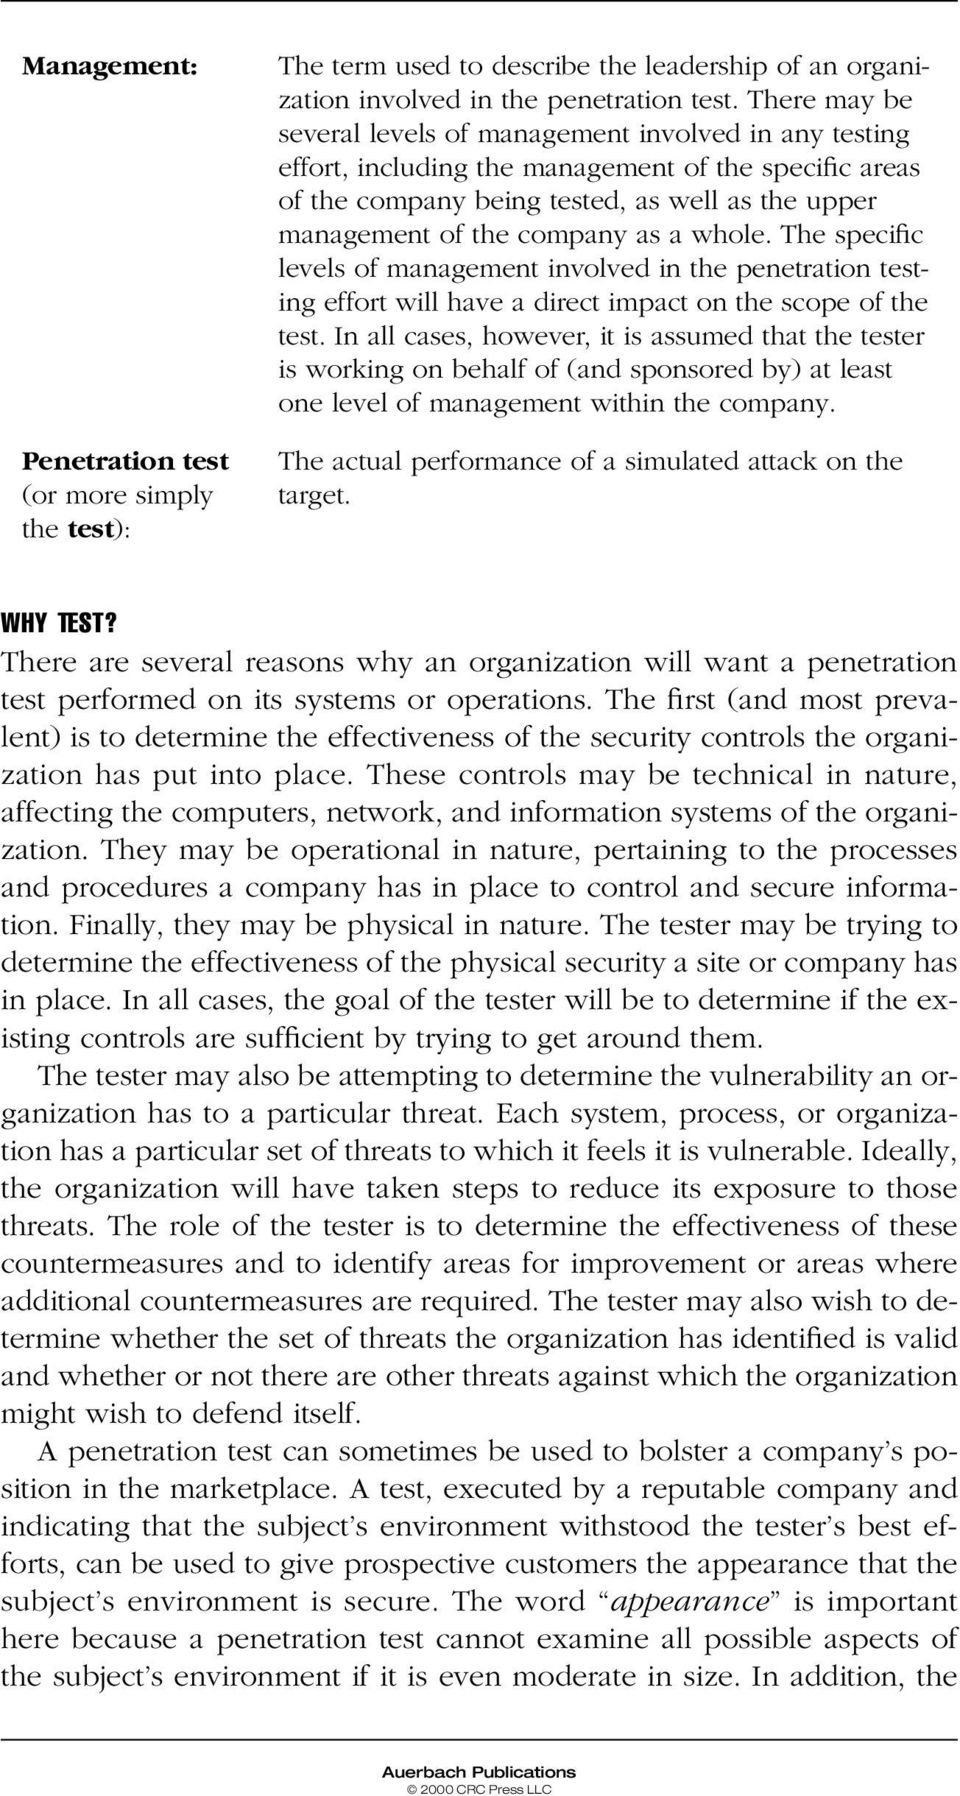 a whole. The specific levels of management involved in the penetration testing effort will have a direct impact on the scope of the test.